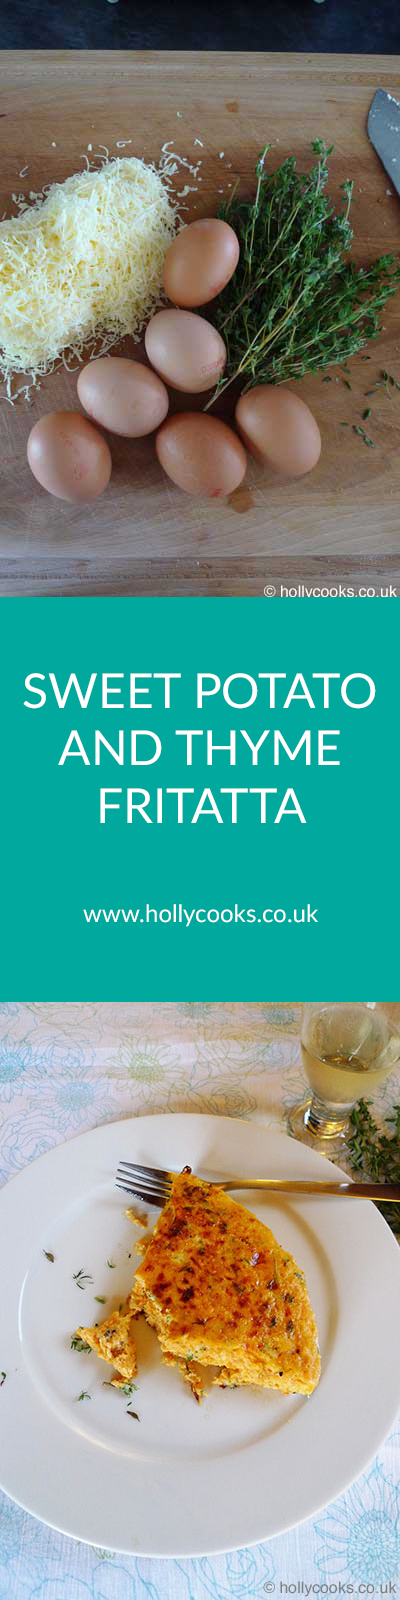 sweet potato and thyme frittata